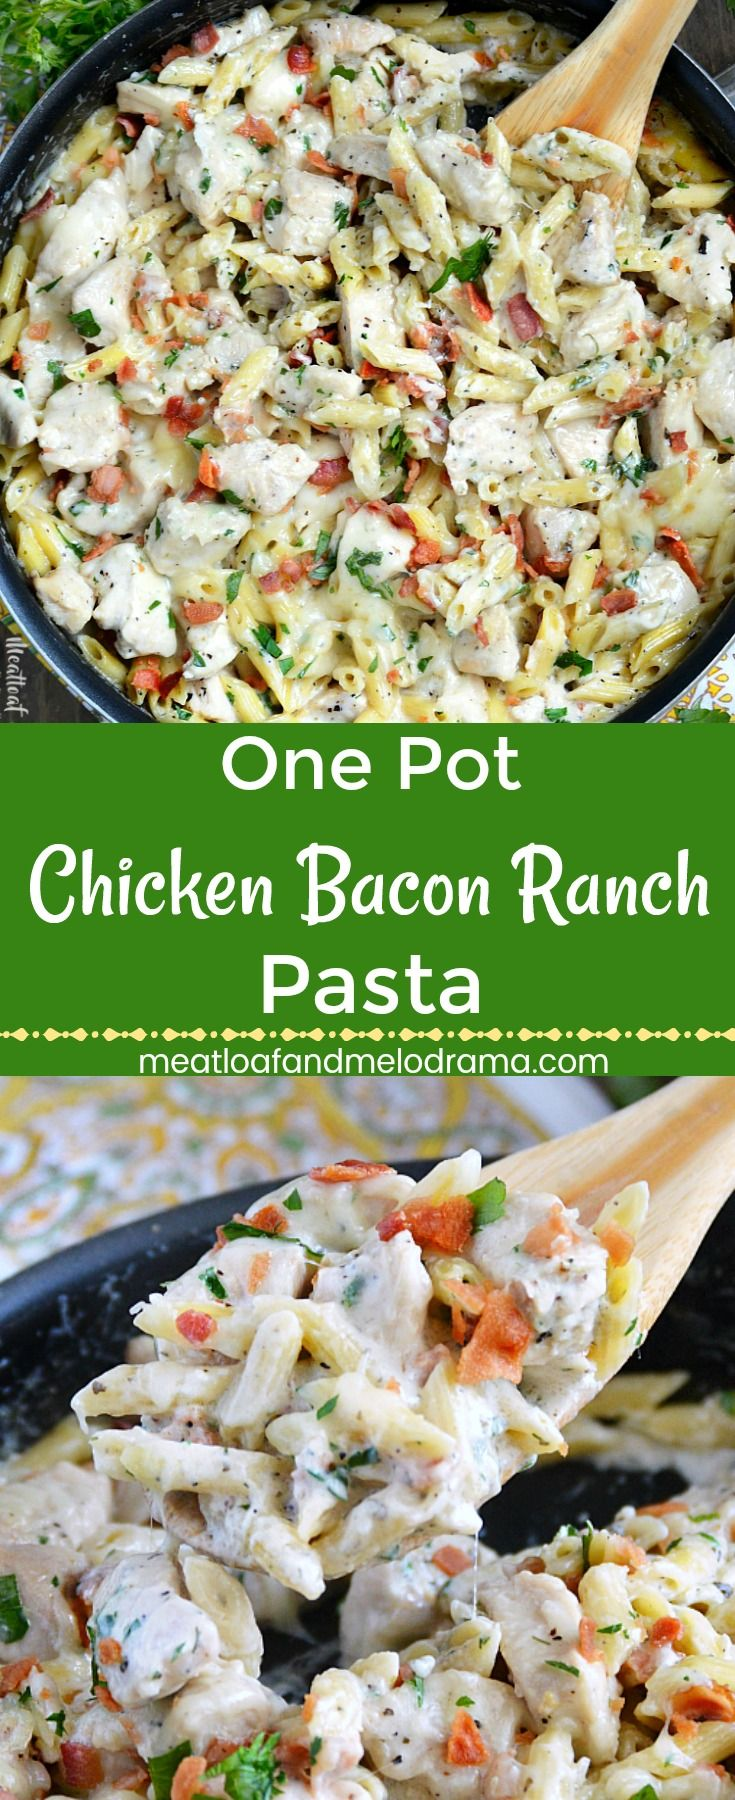 One Pot Chicken Bacon Ranch Pasta - A quick and easy dinner filled with chicken, penne and bacon in a creamy homemade ranch dressing. Ready in 30 minutes and perfect for busy weeknights! from meatloaf and melodrama